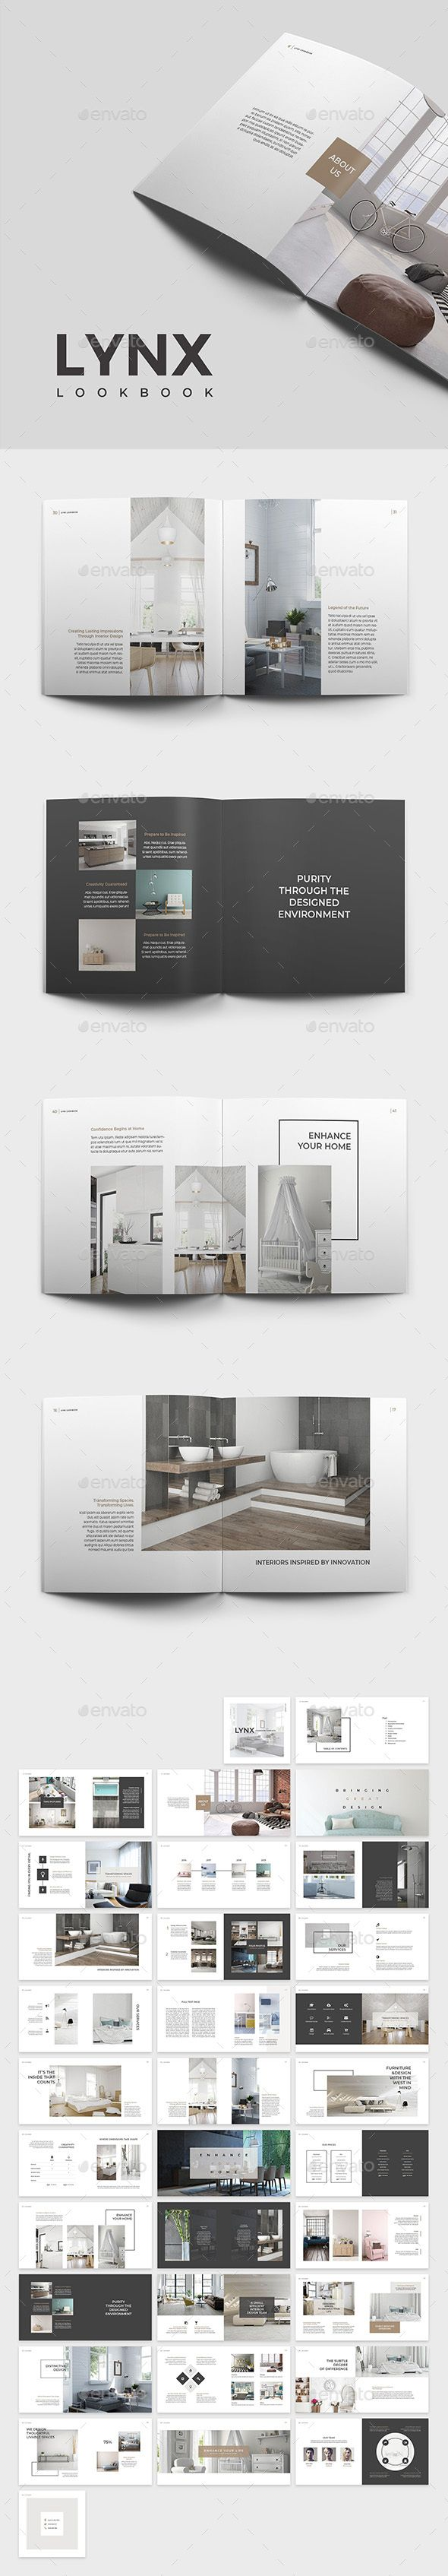 Lynx Lookbook Template InDesign INDD - 64 Pages